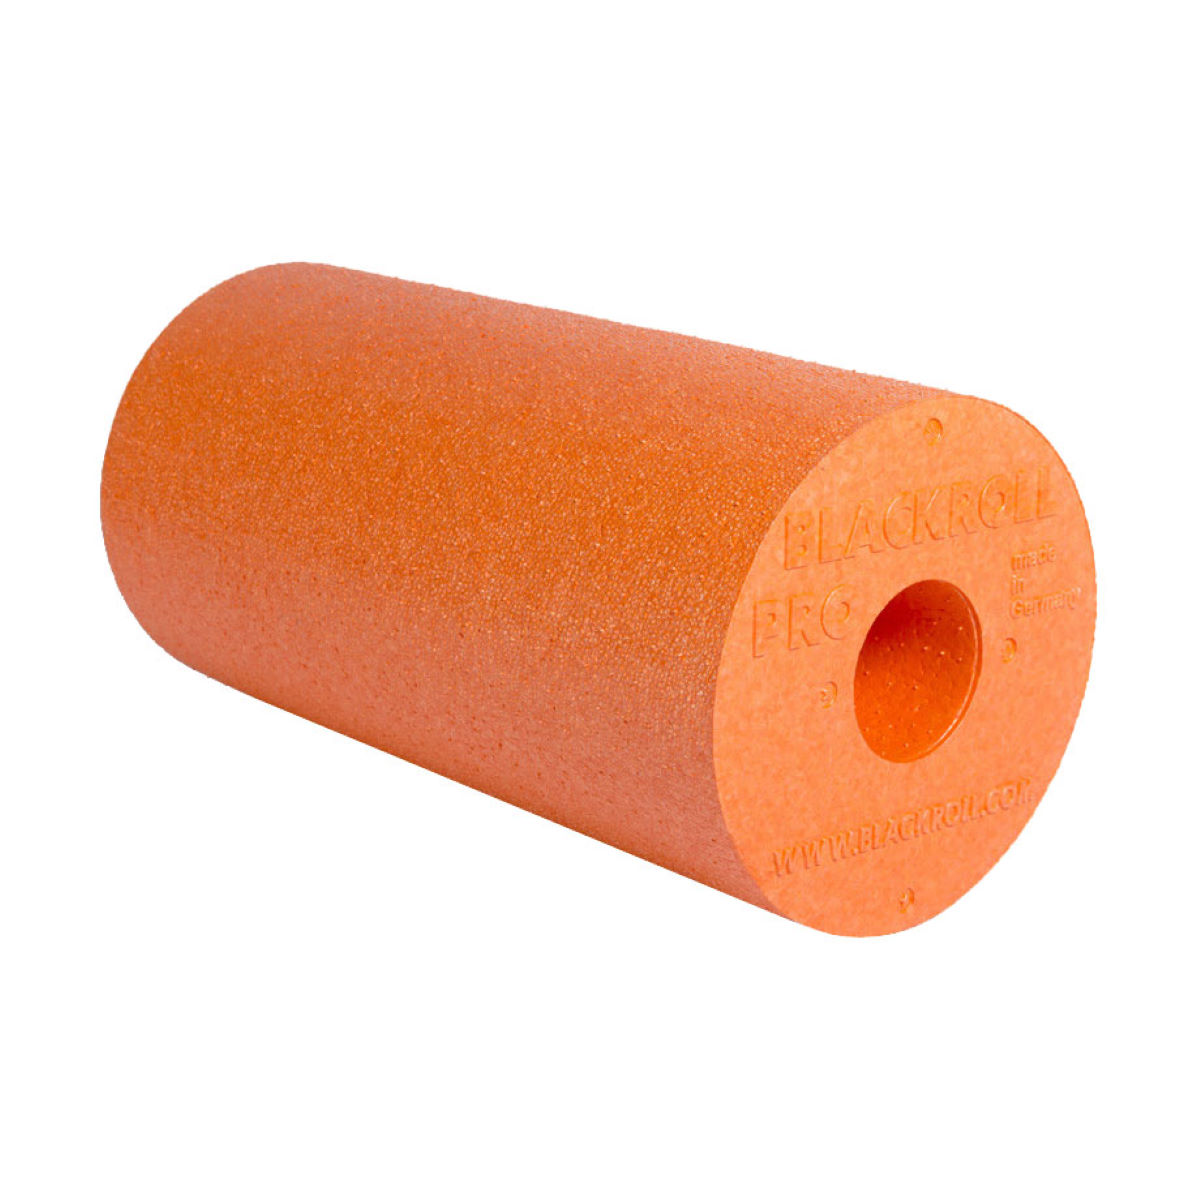 Rouleau BlackRoll Pro - Orange Equipement fitness